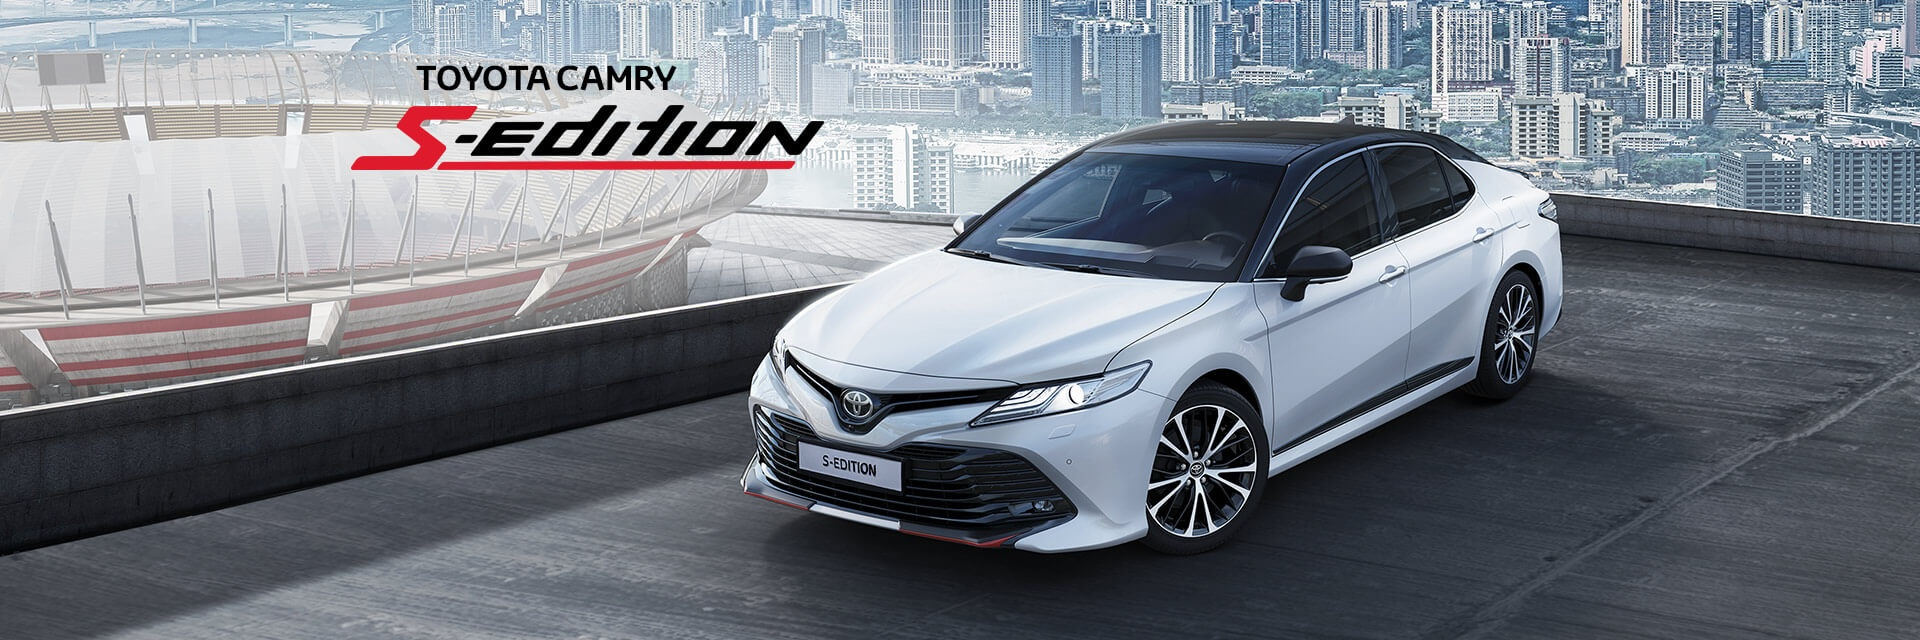 Camry S-Edition